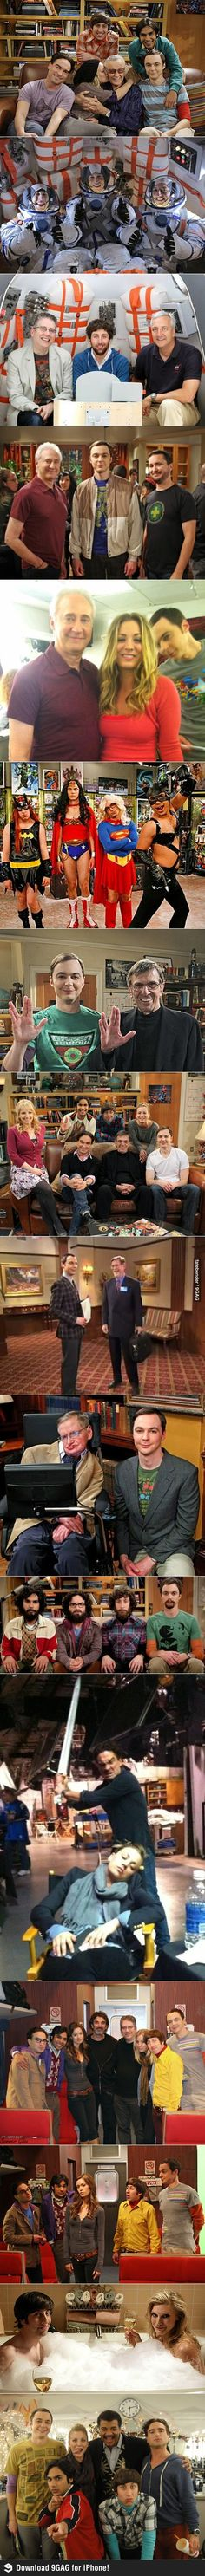 Impresionantes fotos del backstage de The Big Bang Theory  !!!!!!!!!!!!!!